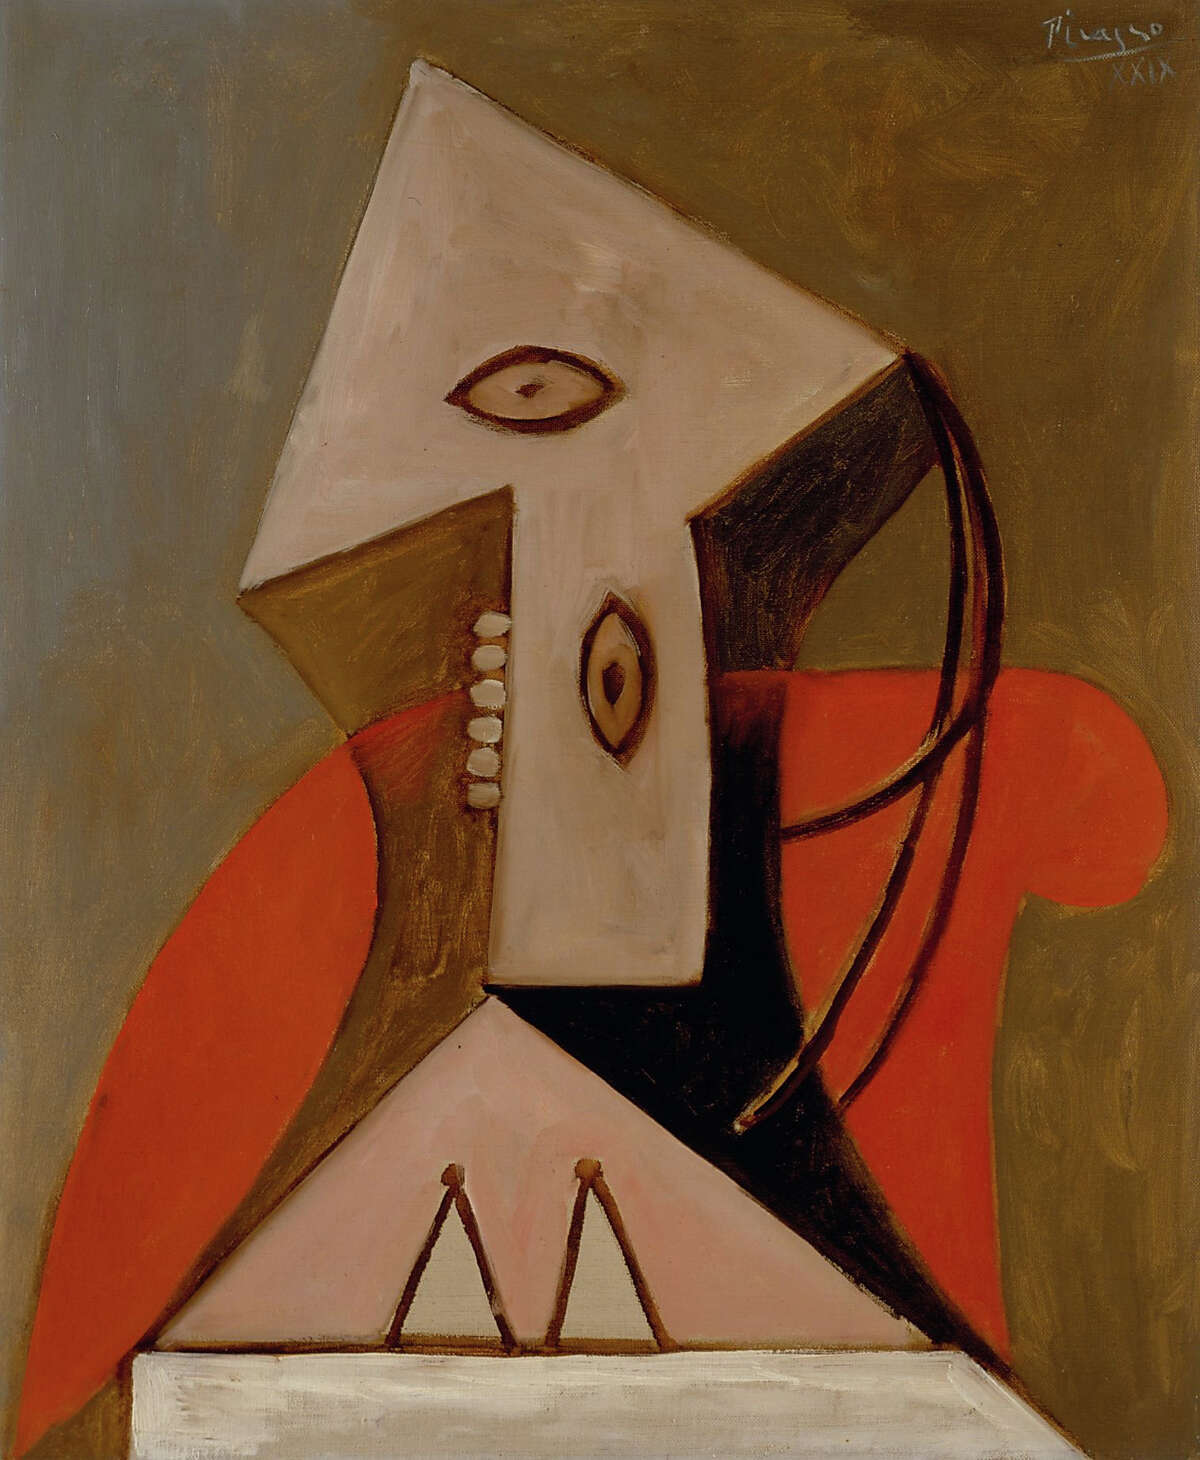 Pablo Picasso painted